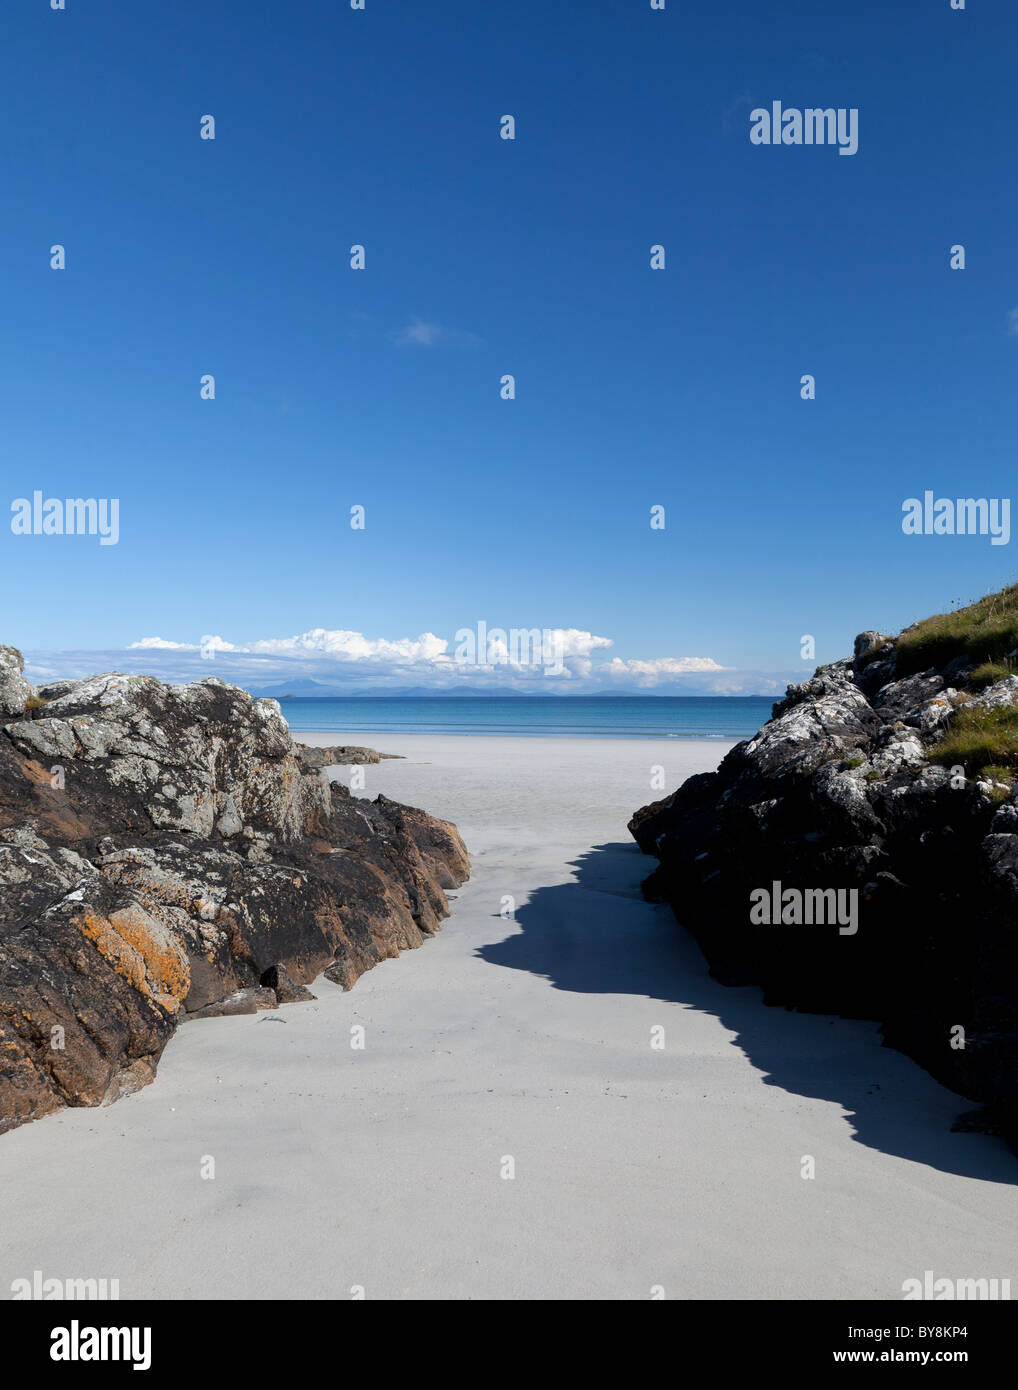 Scotland Argyll & Bute Inner Hebrides Tiree Bhaigh Beach and view to Mull - Stock Image